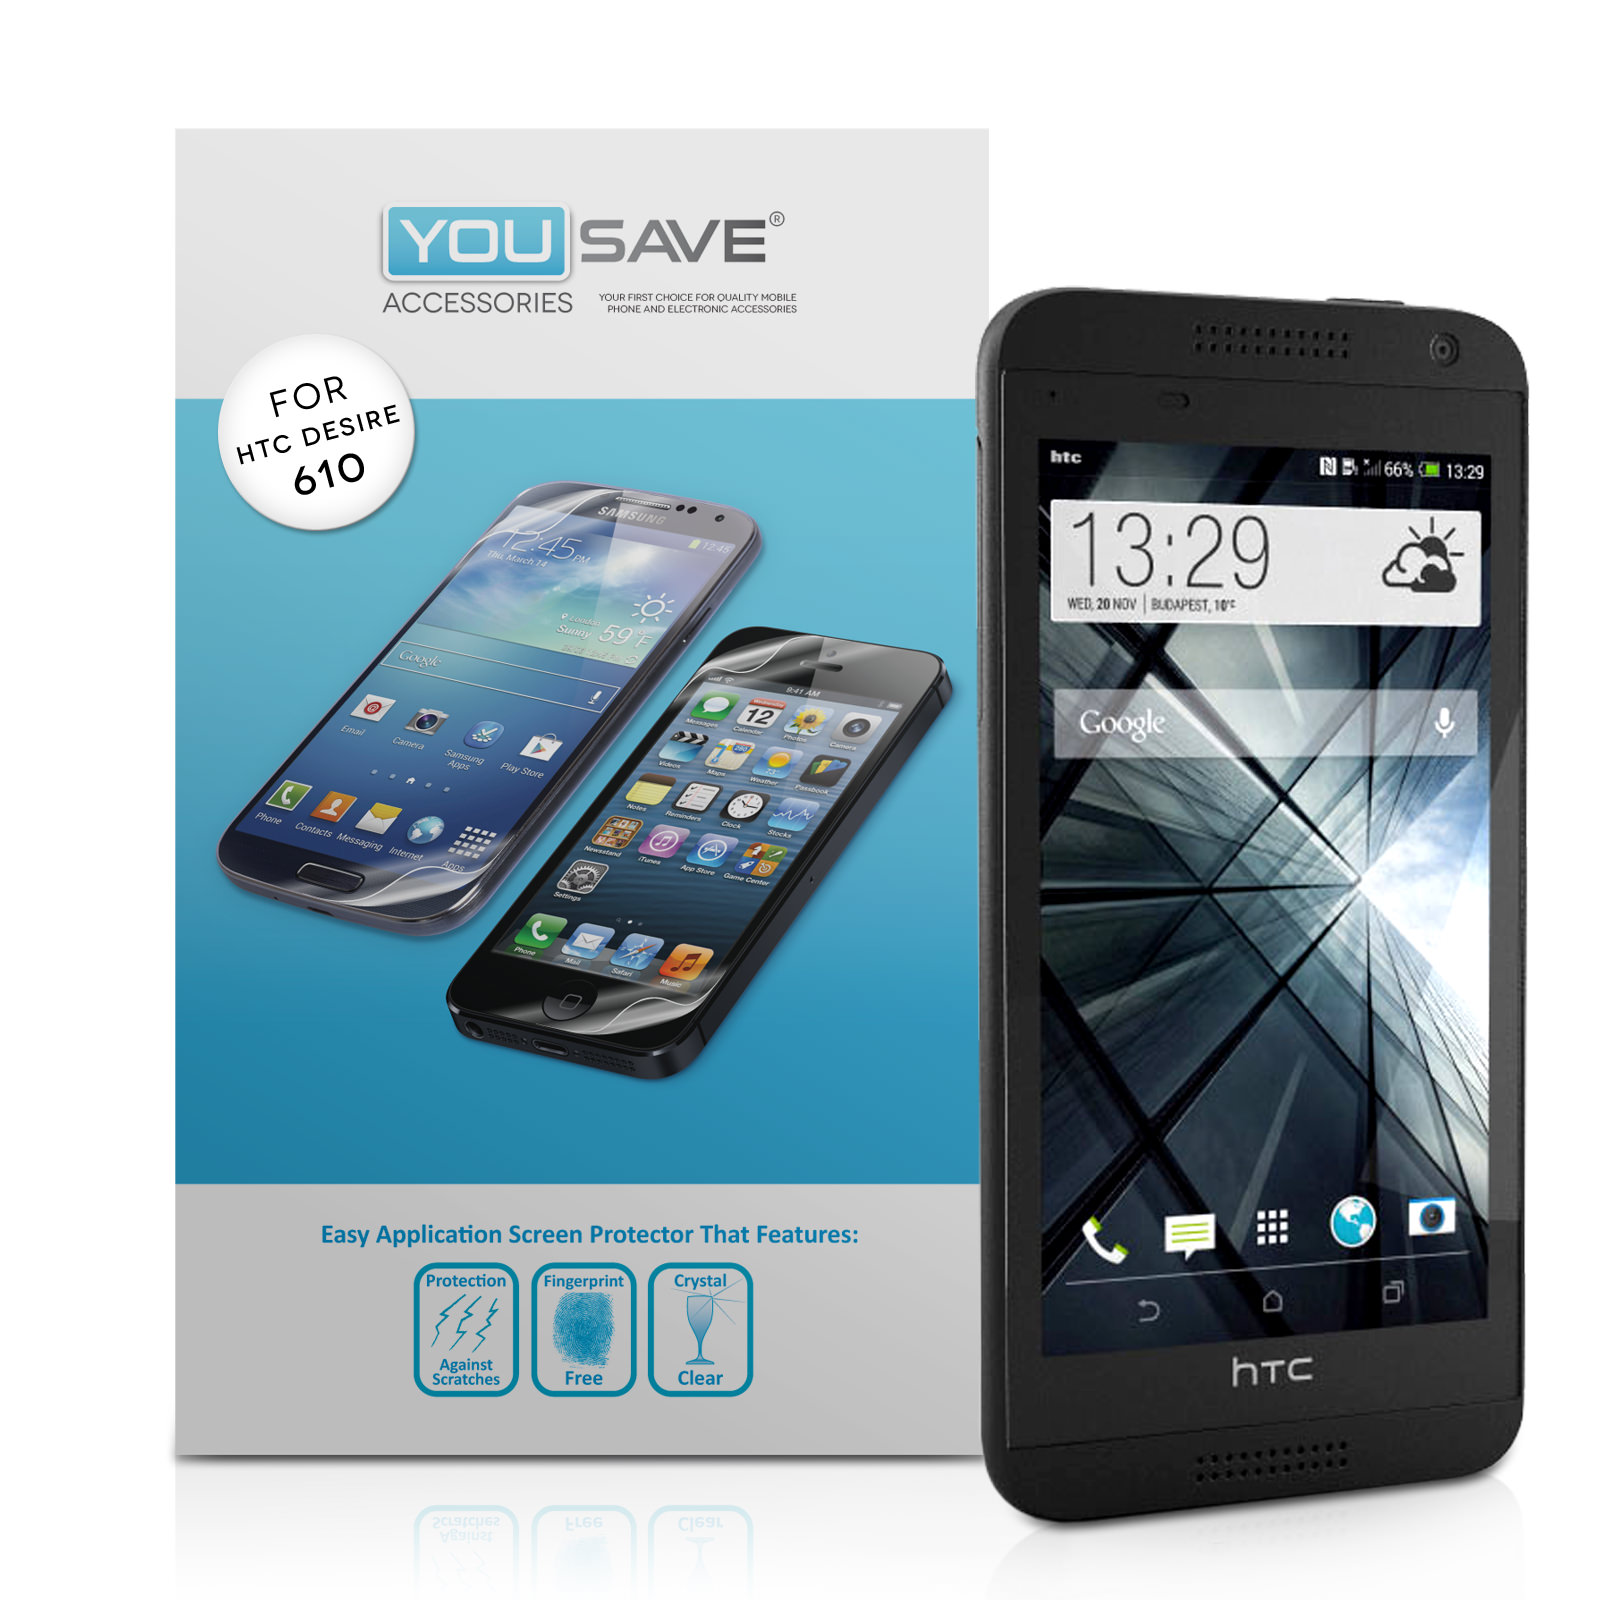 YouSave Accessories HTC Desire 610 Screen Protectors x3